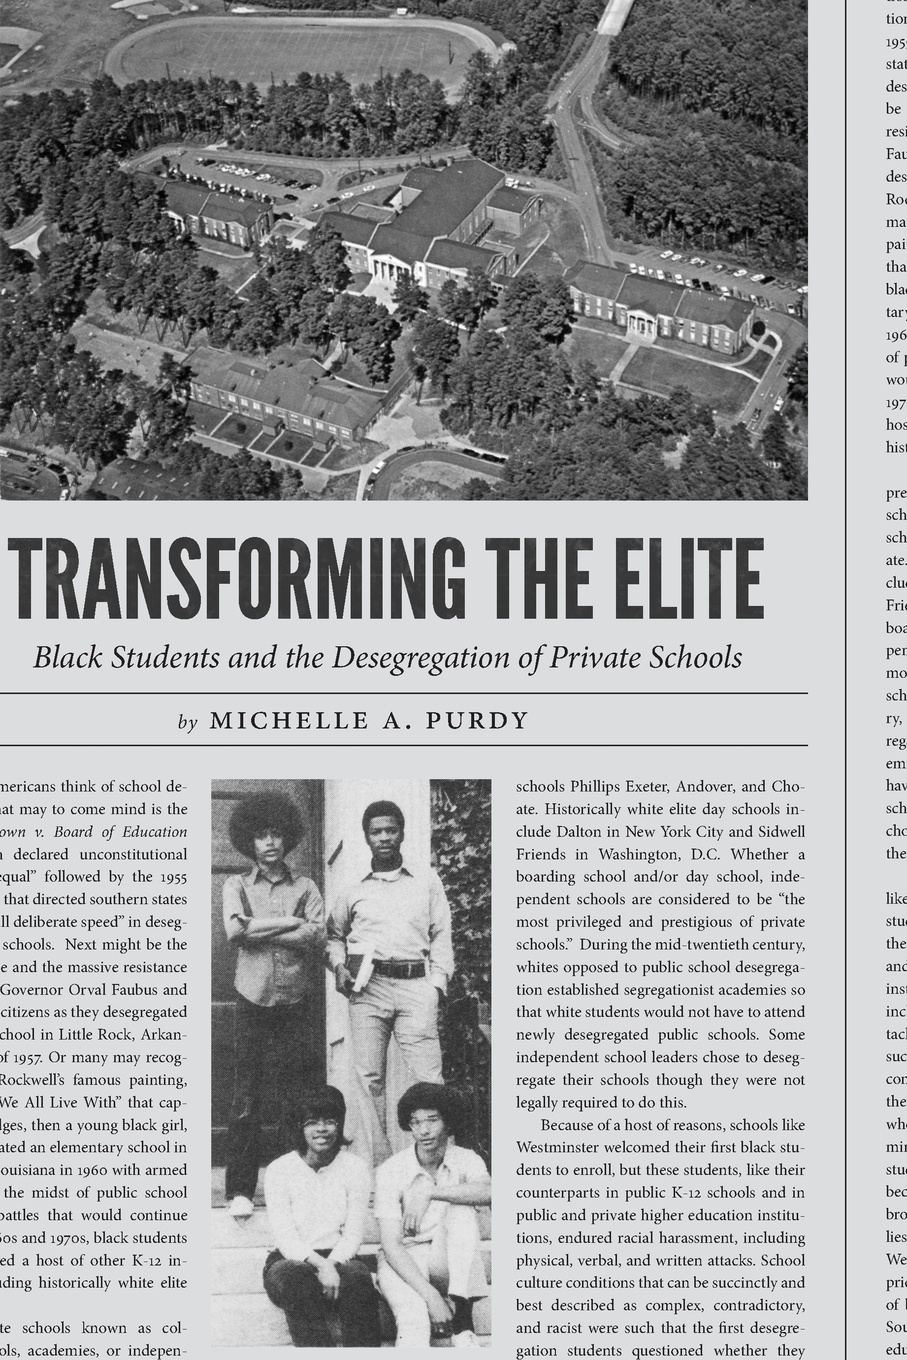 Michelle A. Purdy Transforming the Elite. Black Students and the Desegregation of Private Schools janet d mulvey bruce s cooper arthur t maloney blurring the lines charter public private and religious schools come together